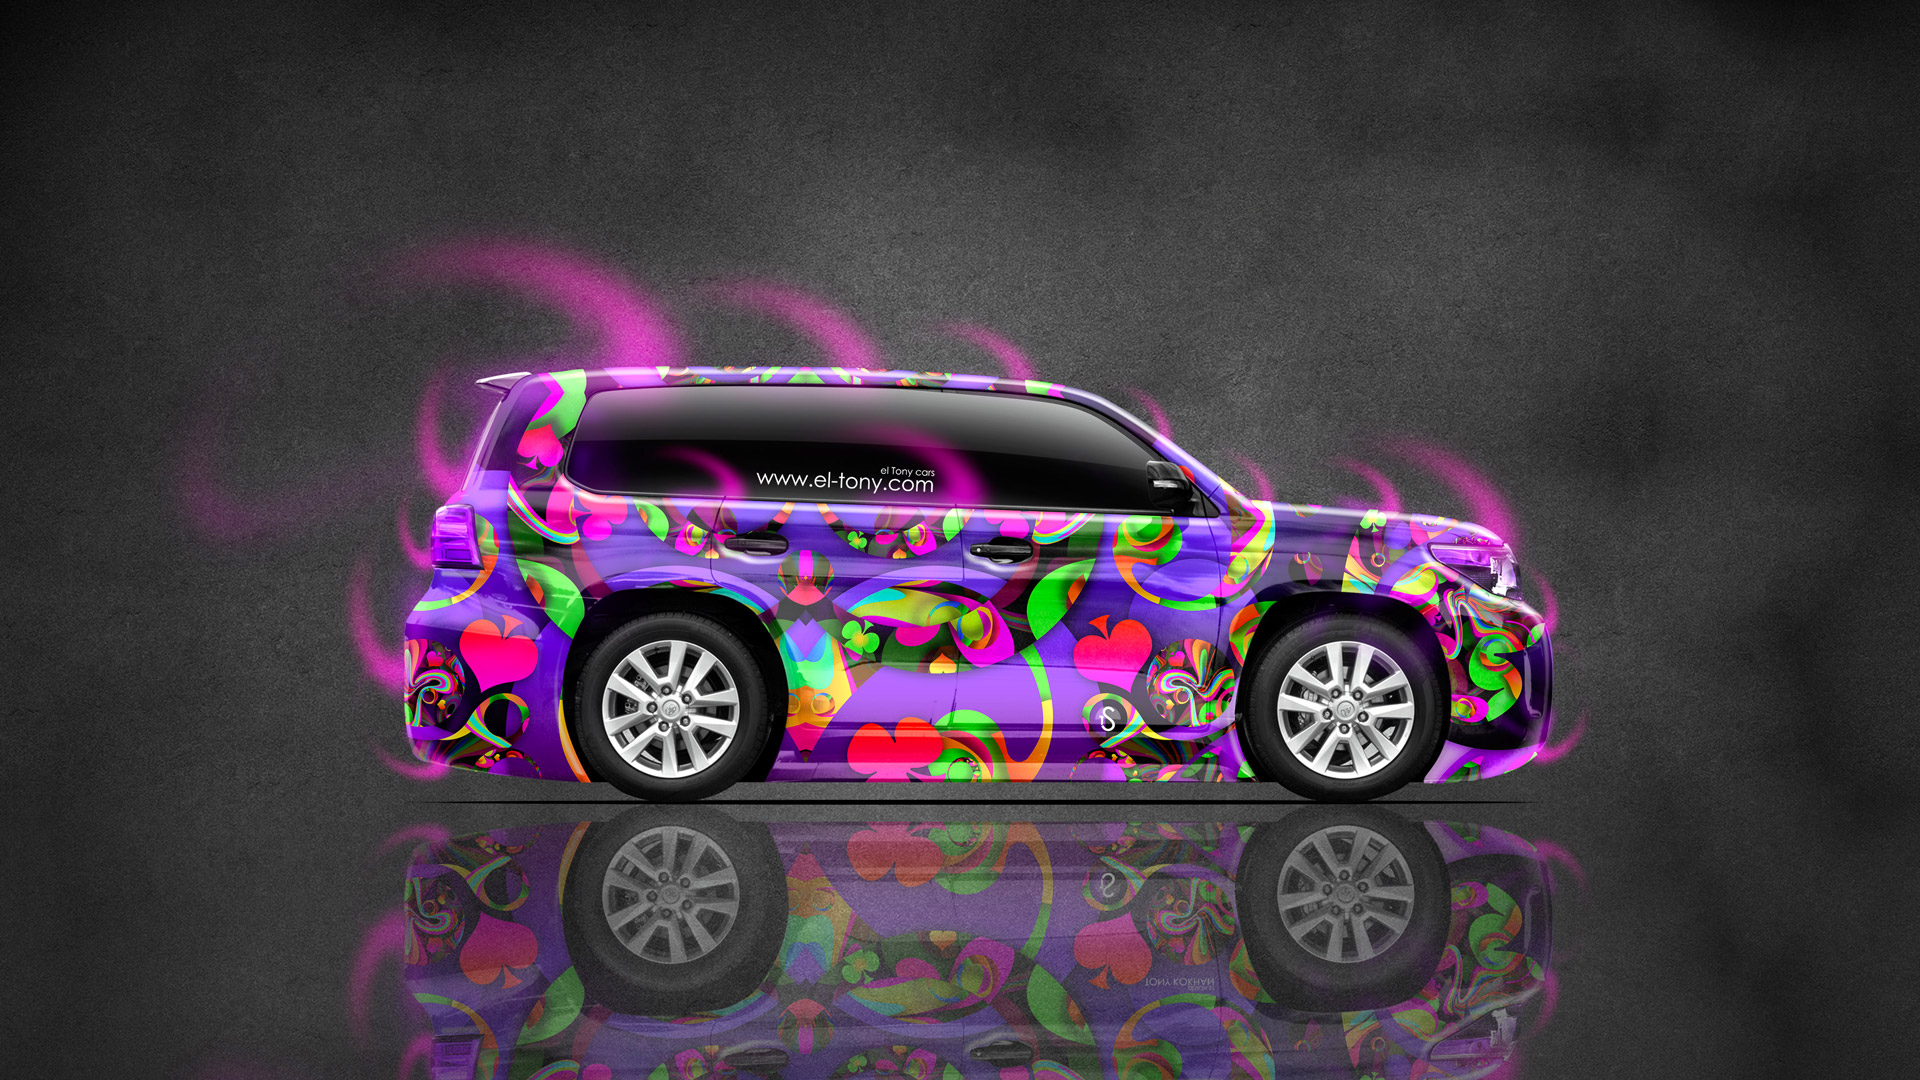 Toyota-Land-Cruiser-200-Jeep-Side-Abstract-Aerography-Car-2015-Multicolors-Pink-Neon-Effects-HD-Wallpapers-design-by-Tony-Kokhan-www.el-tony.com-image